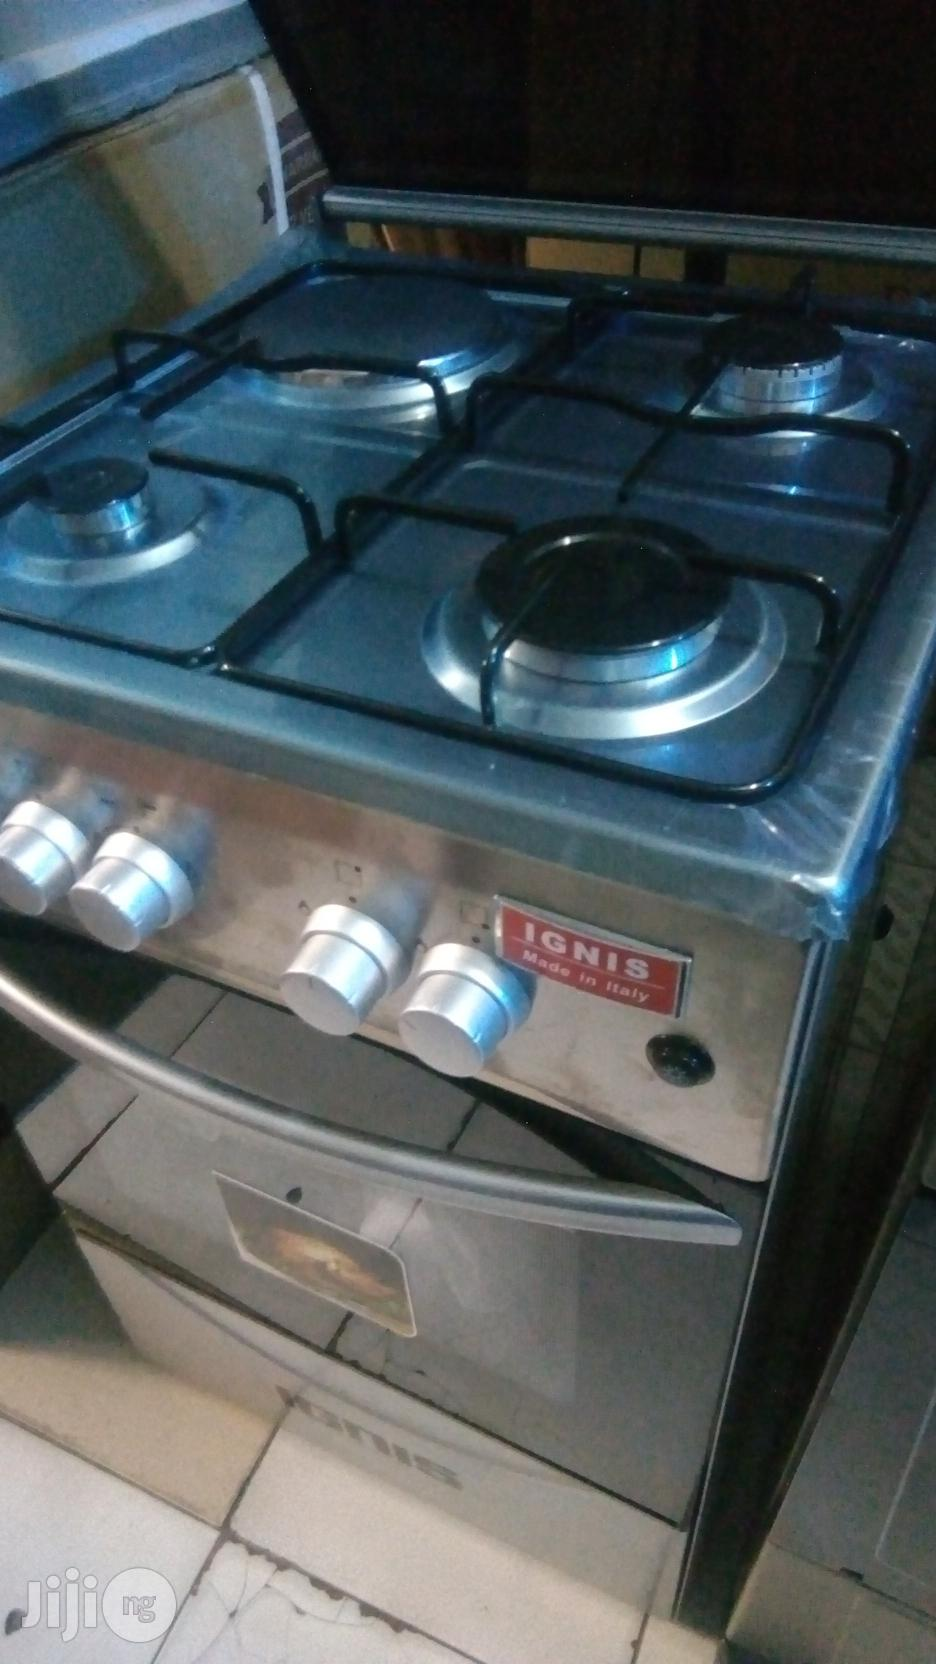 4 Burners Standing Cooker With Oven   Kitchen Appliances for sale in Ojo, Lagos State, Nigeria